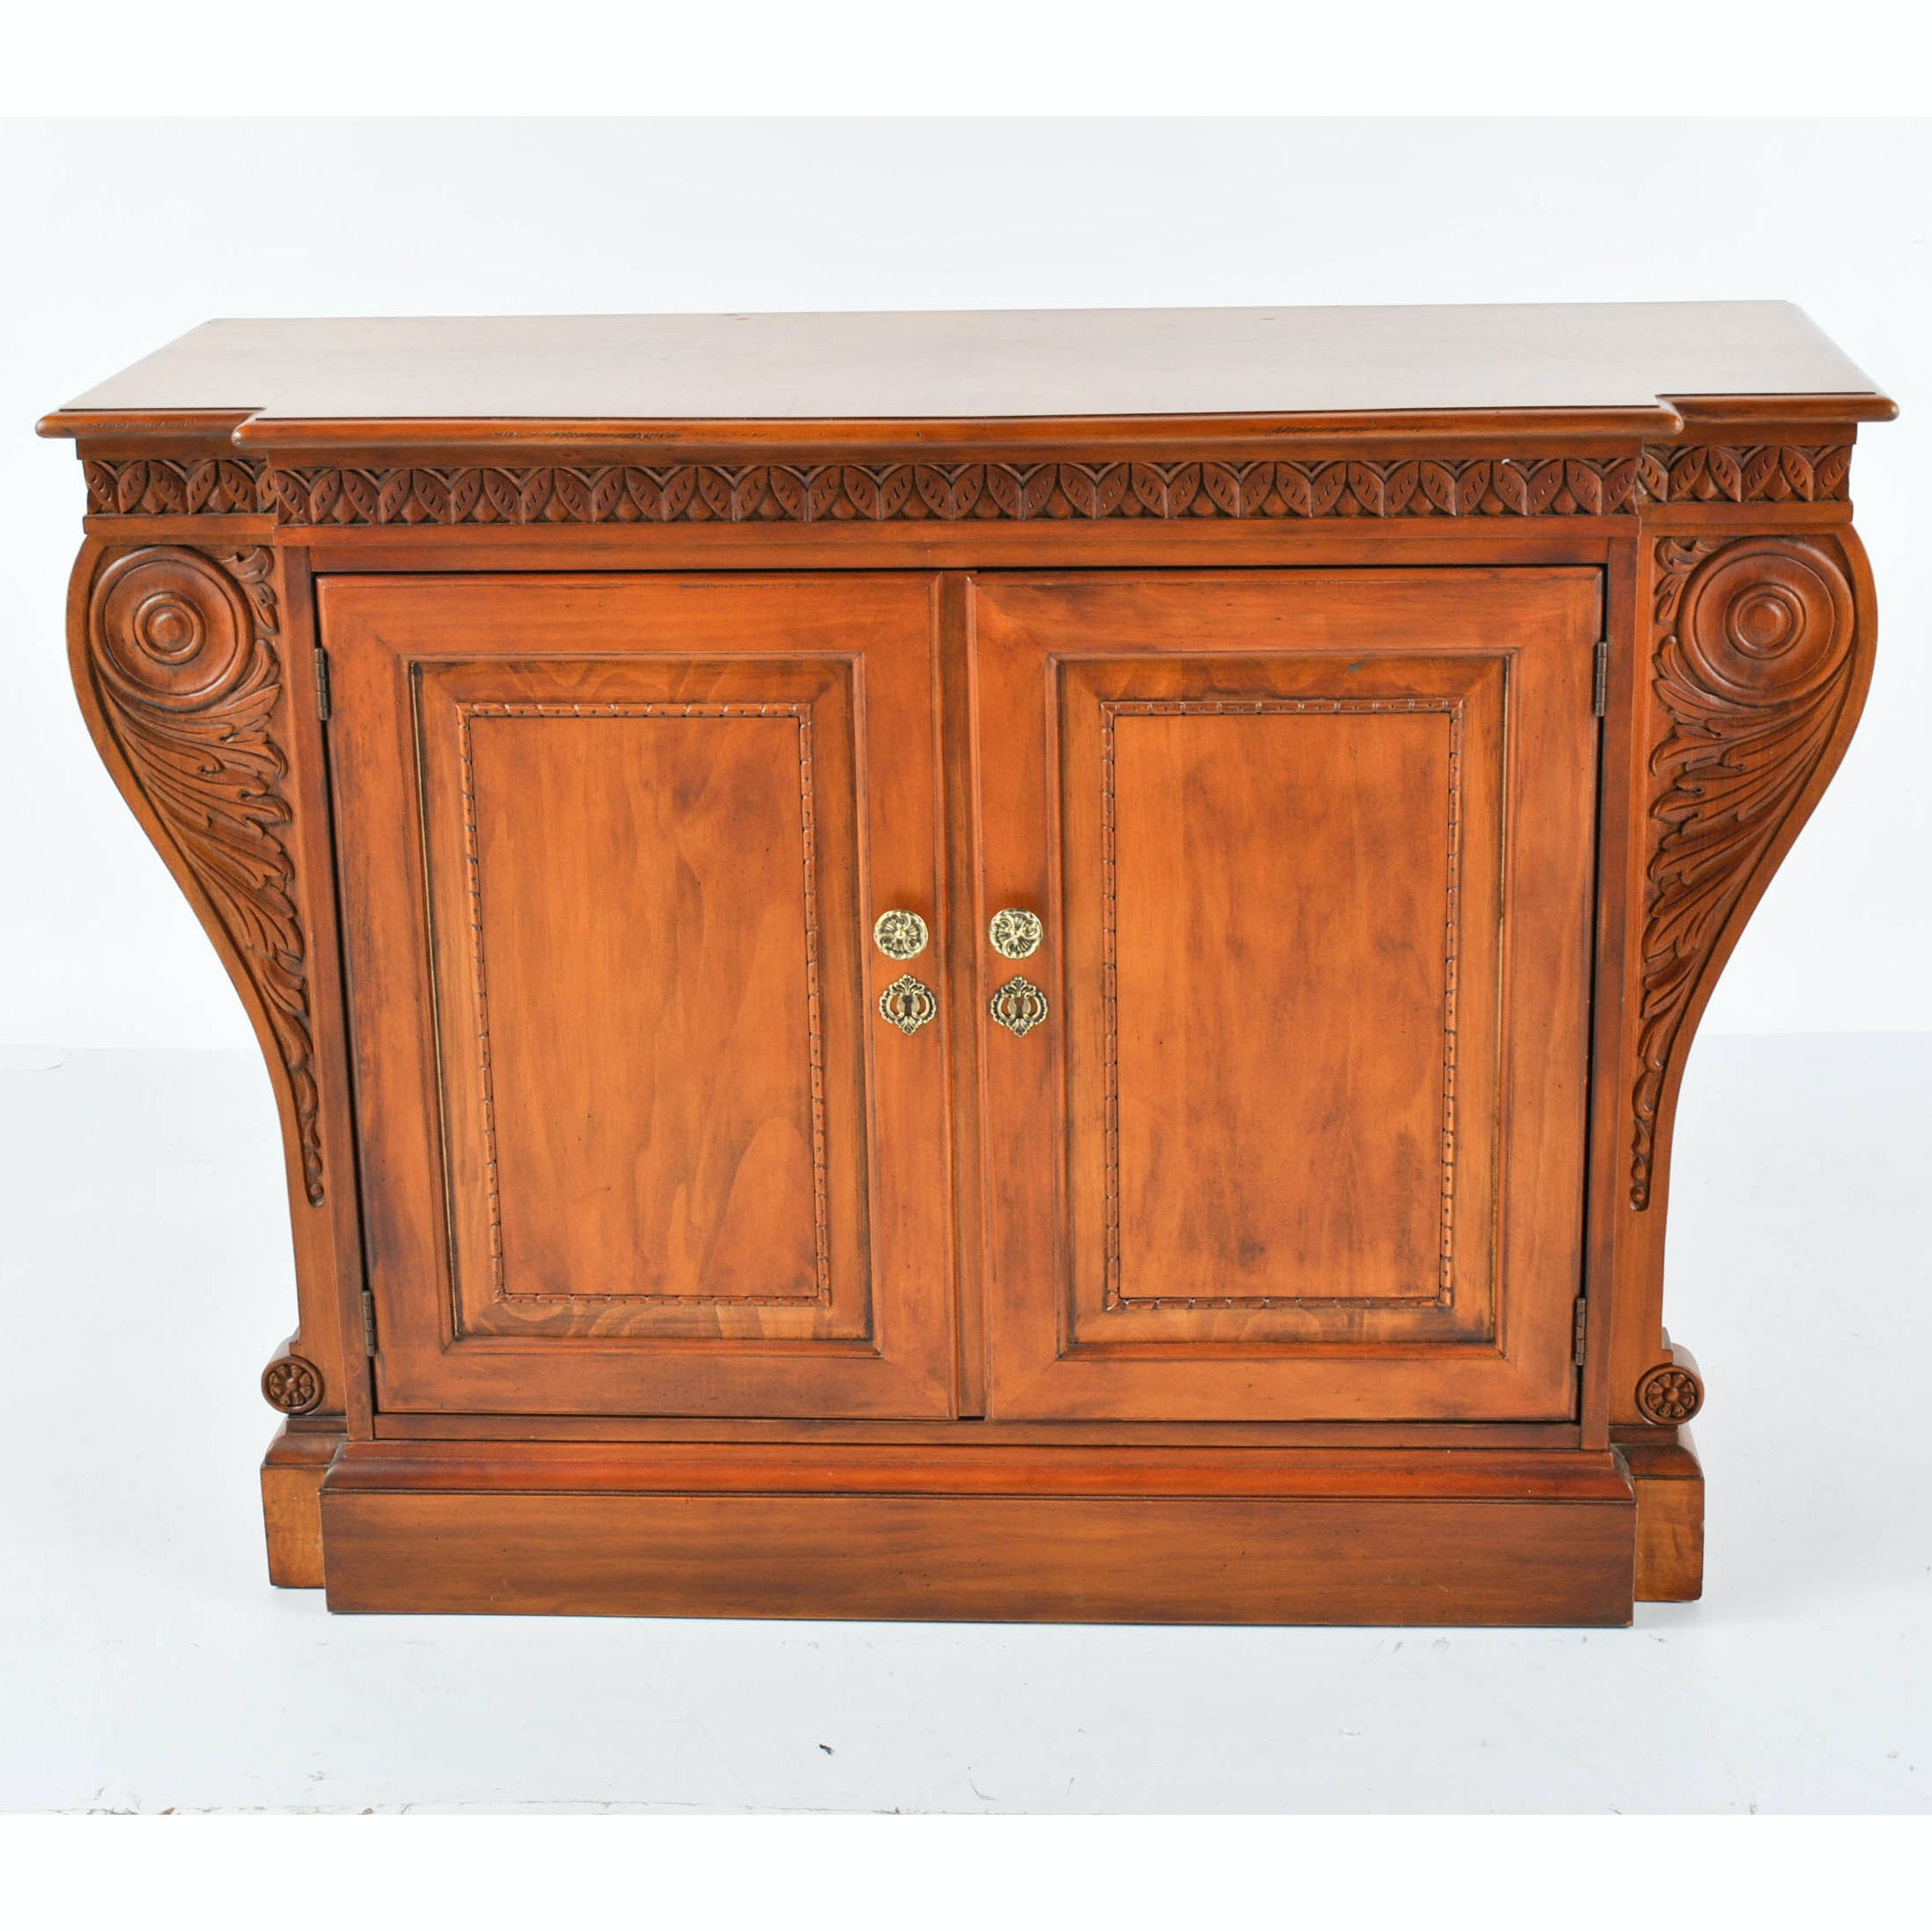 Contemporary Neoclassical Style Breakfront Cabinet